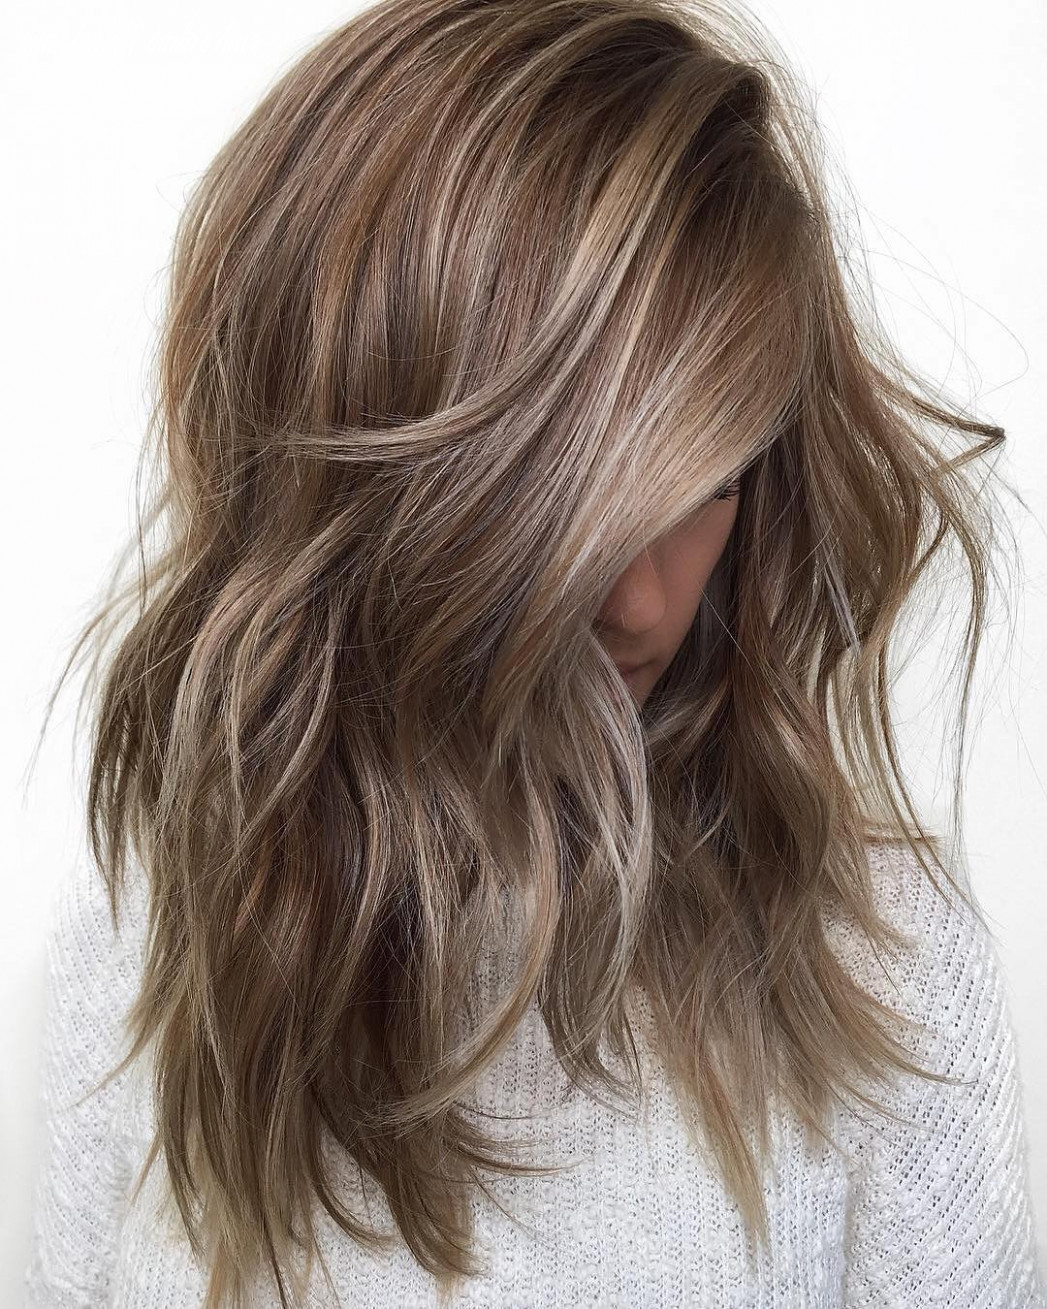 Balayage ombre hair styles for shoulder length hair nicestyles mid length ombre hair